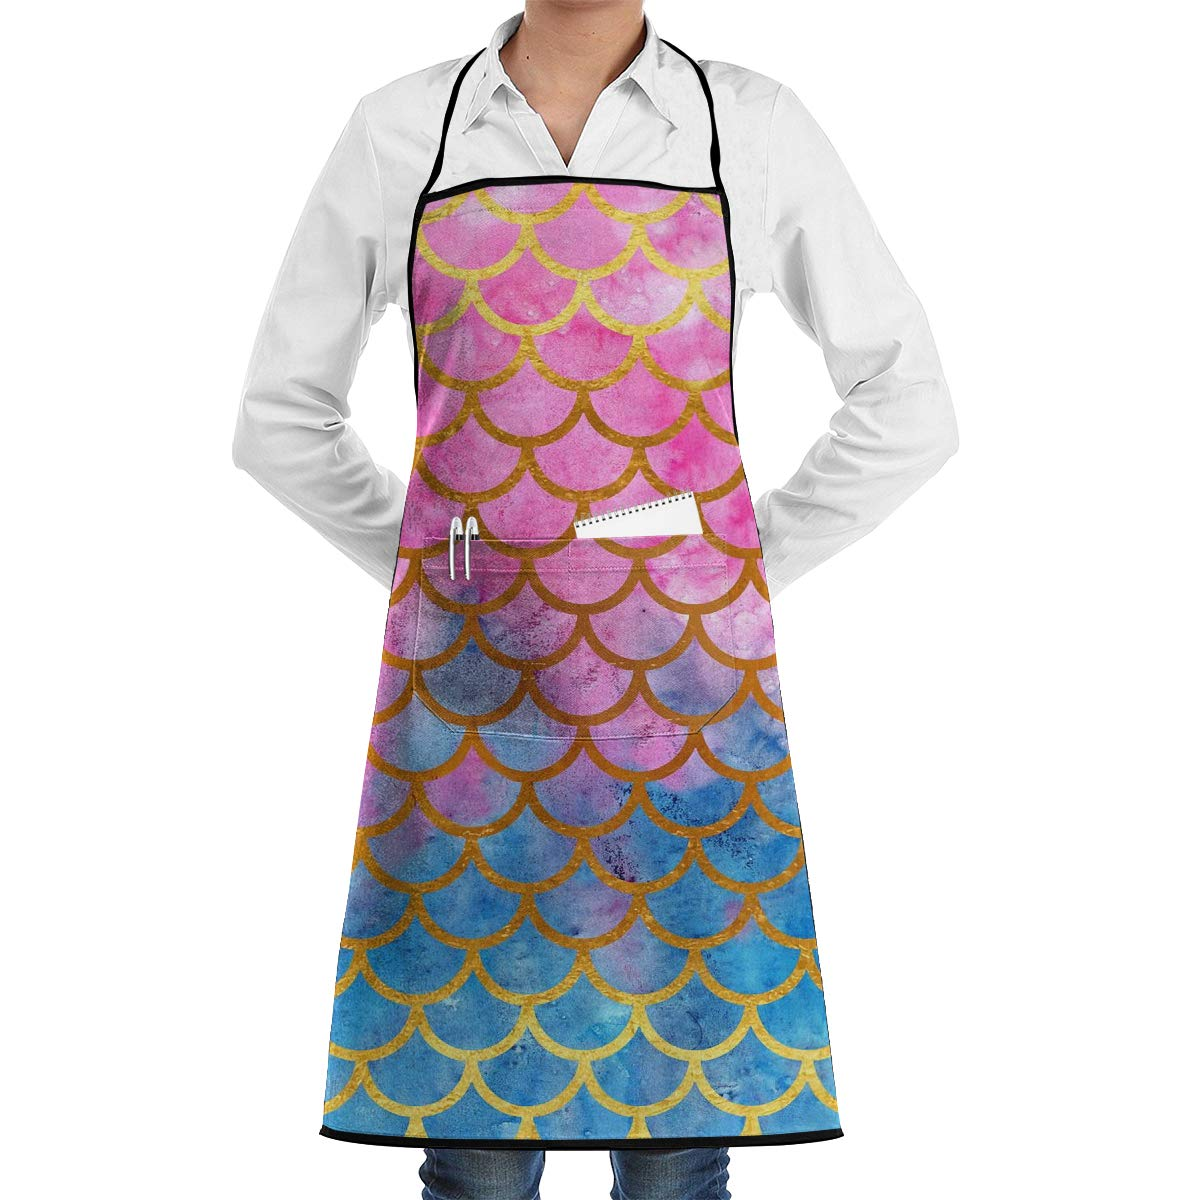 NiYoung Professional Kitchen Apron- Mermaid Watercolor Gold Pink Fish Scales -Woman Aprons Comfortable Perfect for Cooking Guide by NiYoung